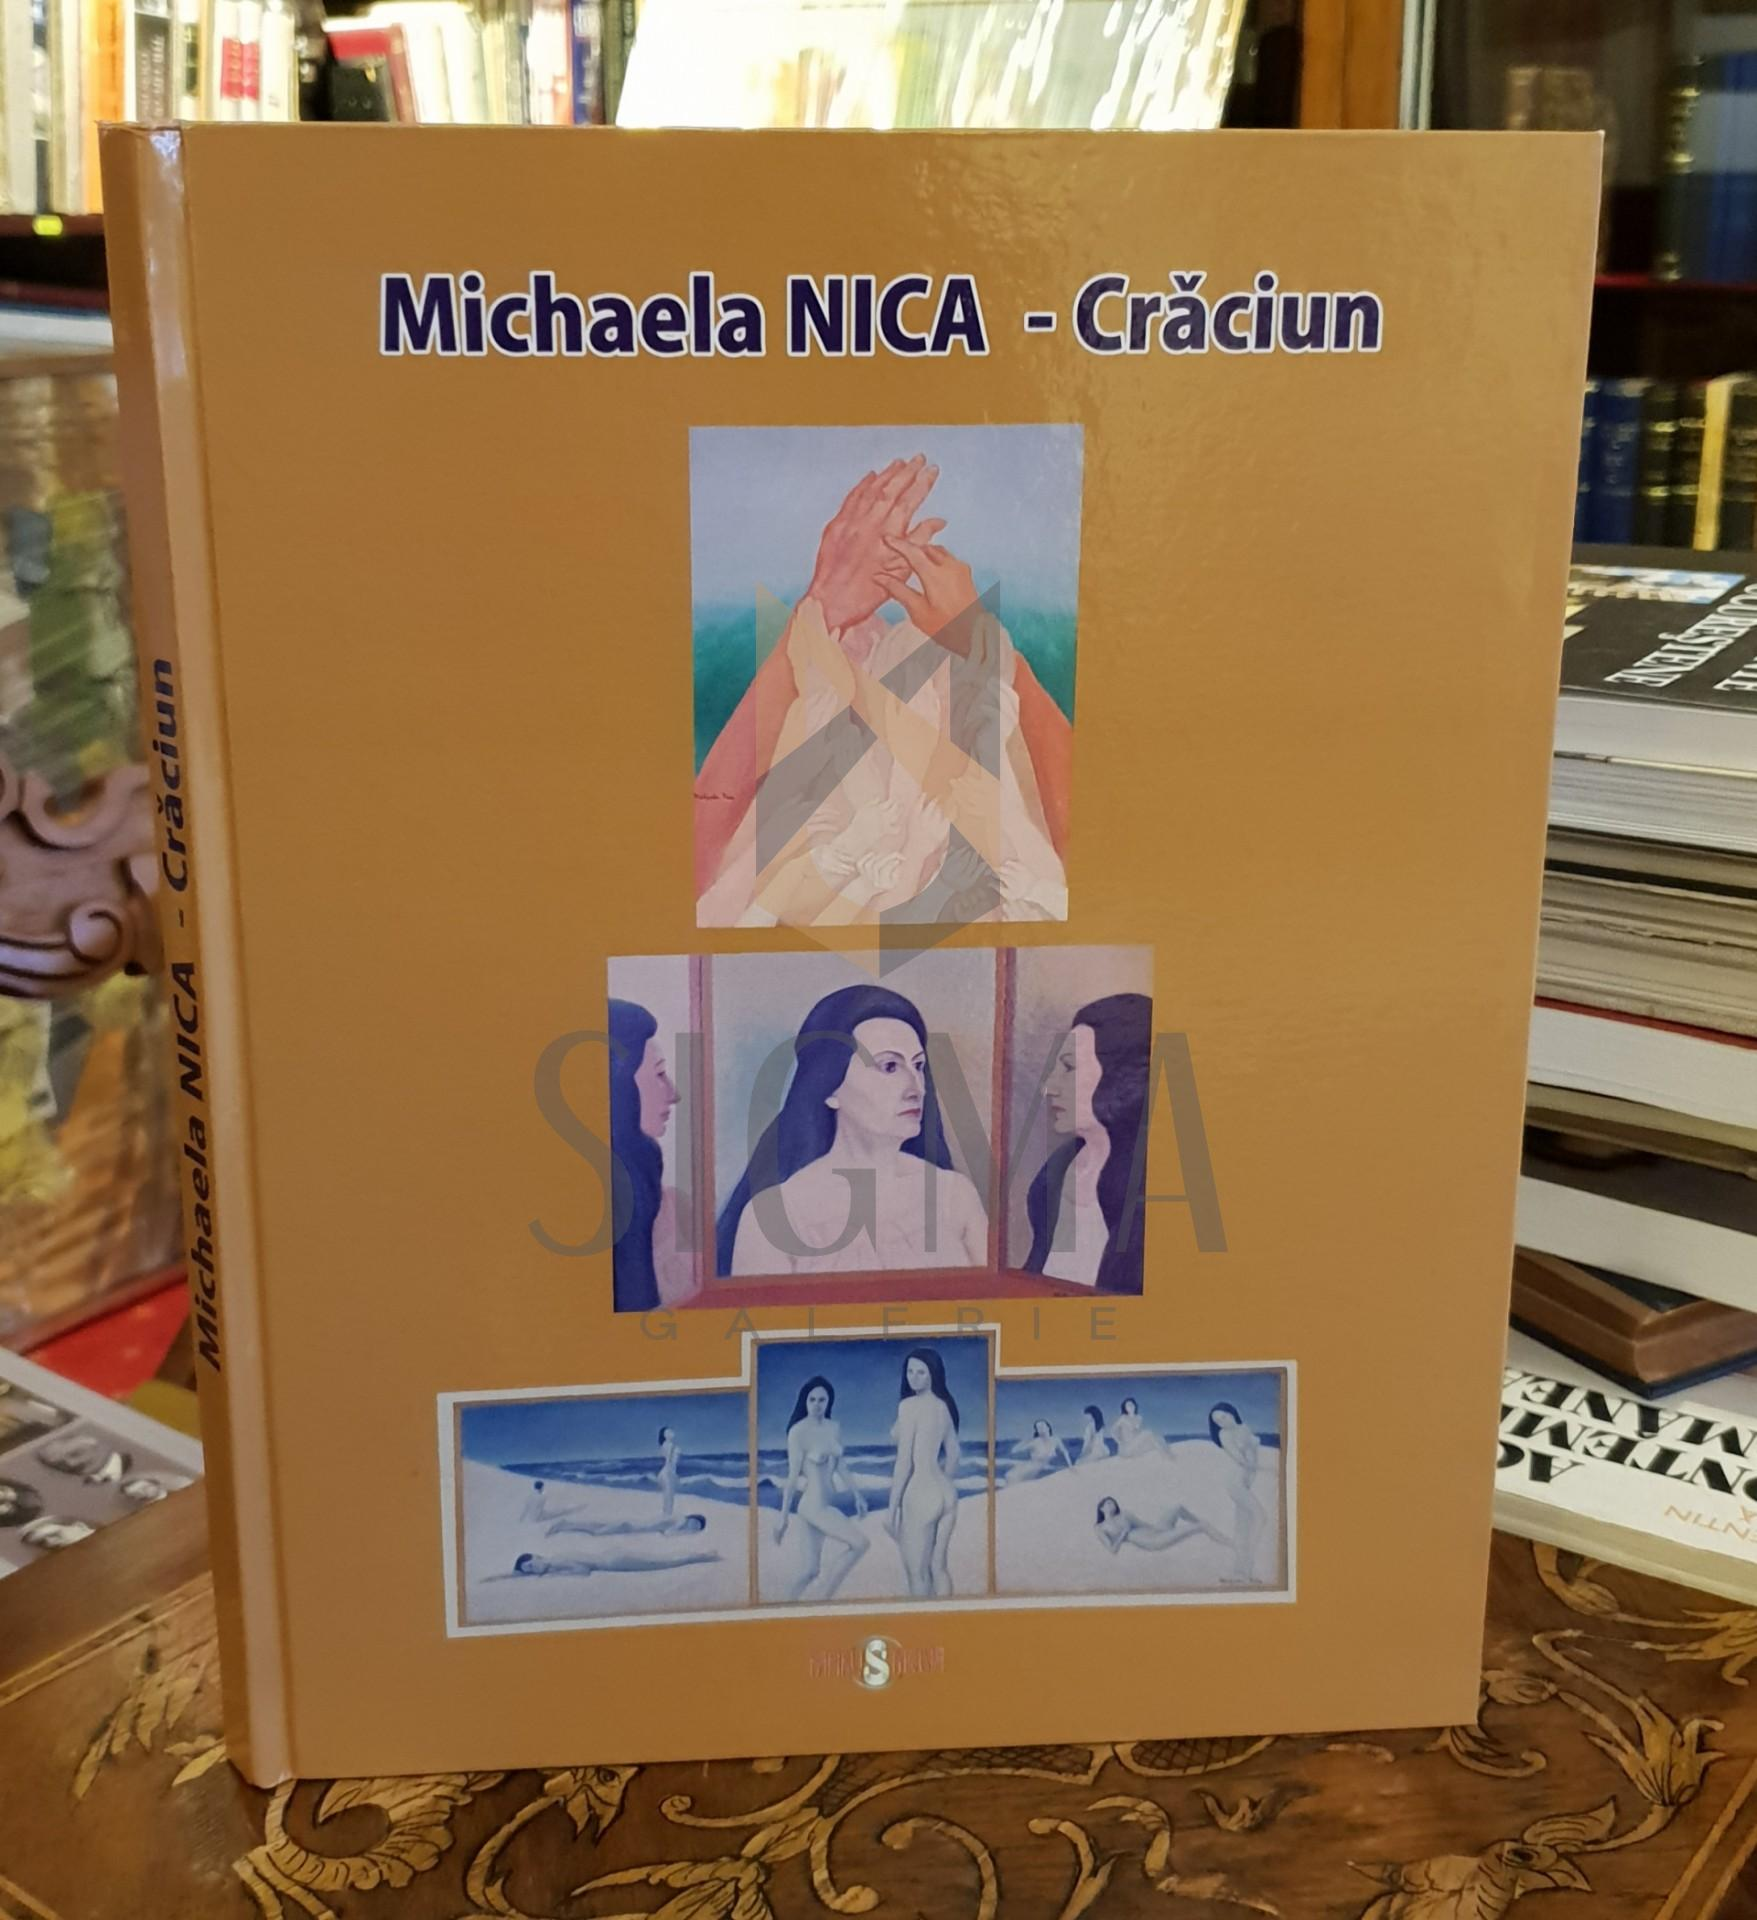 Michaela Nica - Craciun